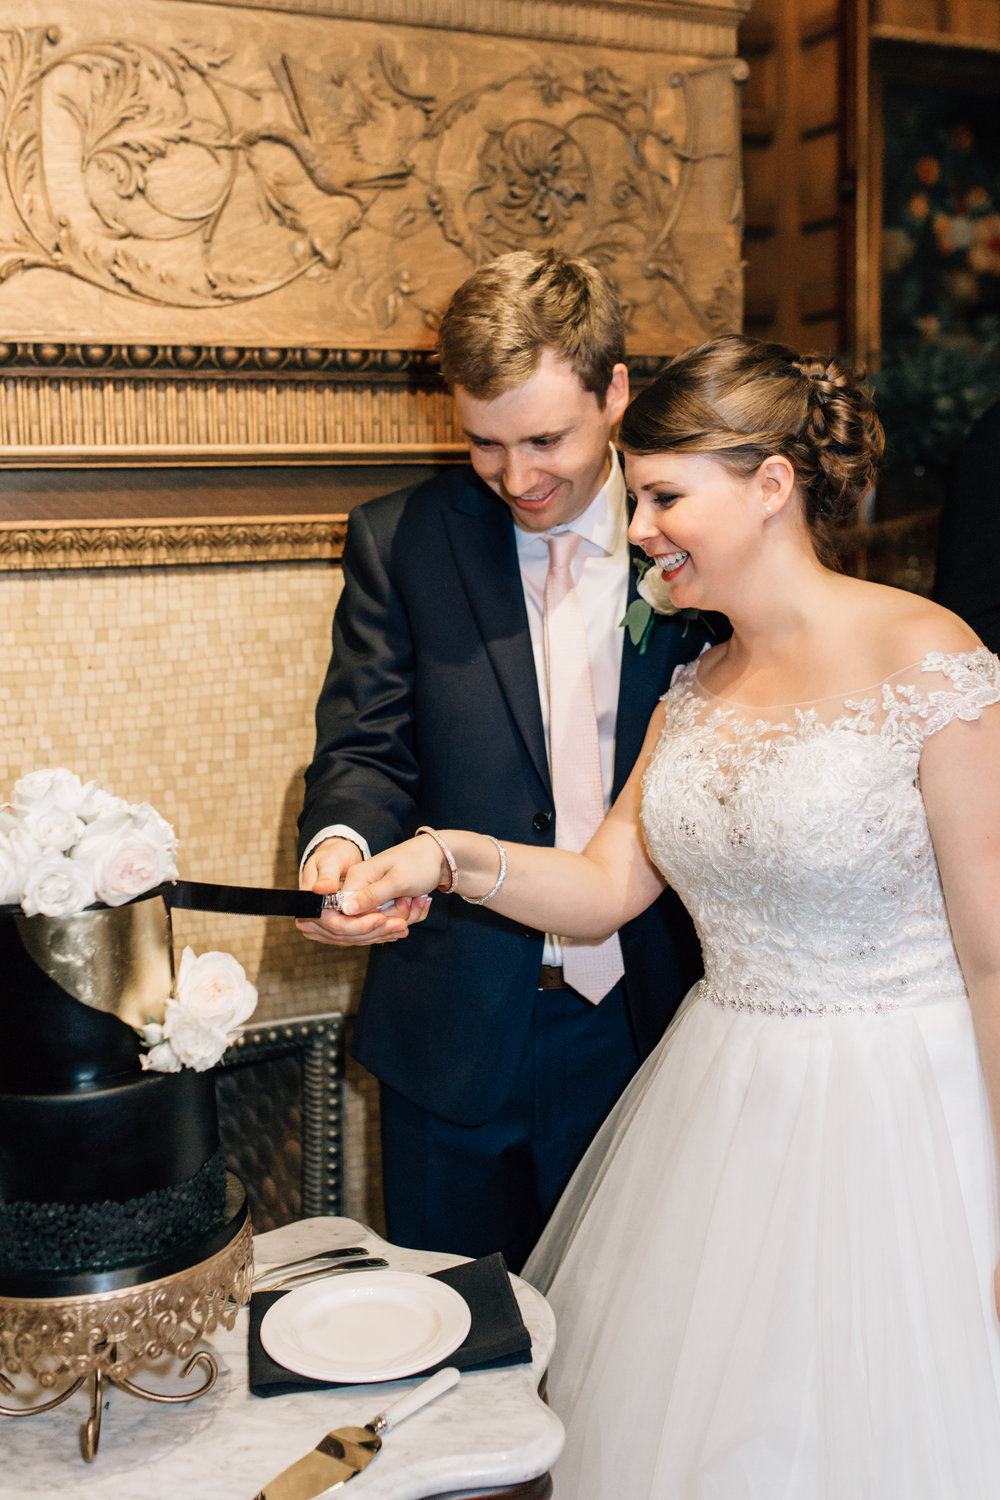 Captured by Justina Lousie Photography at the Van Dusen Mansion